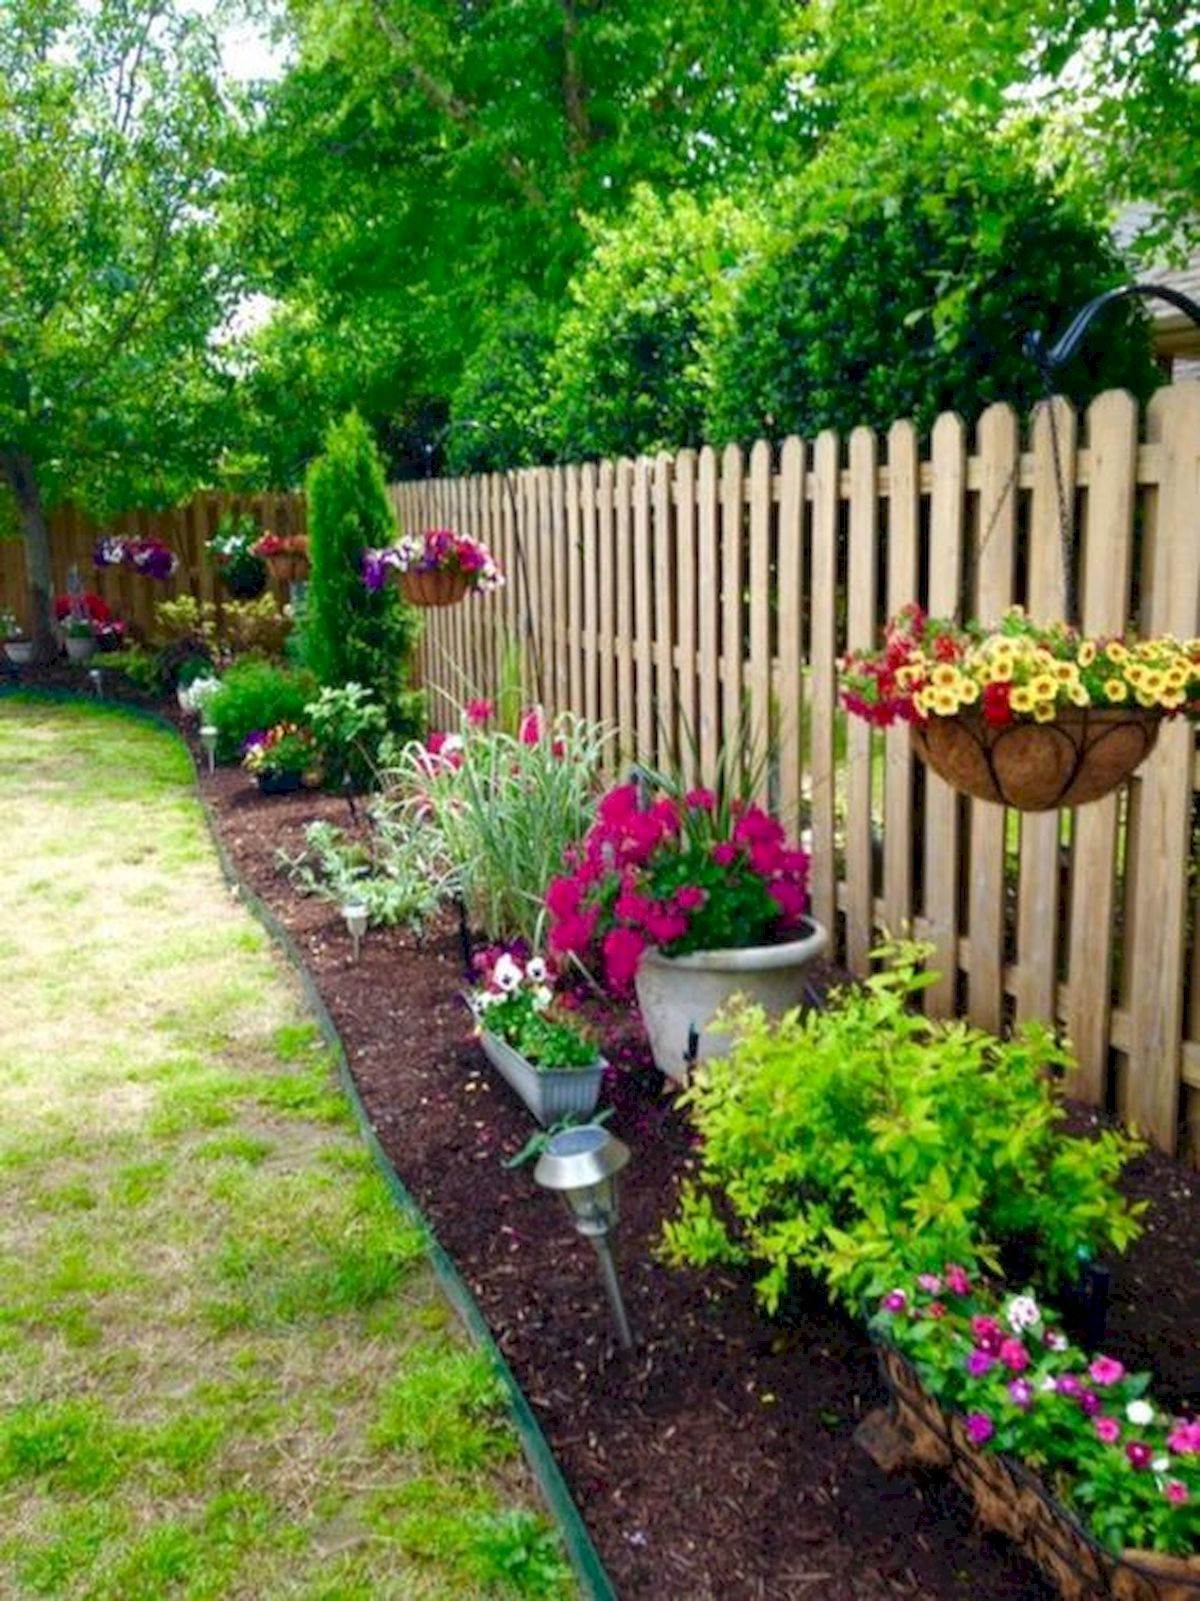 50 Awesome Modern Backyard Garden Design Ideas With Hanging Plants (37)